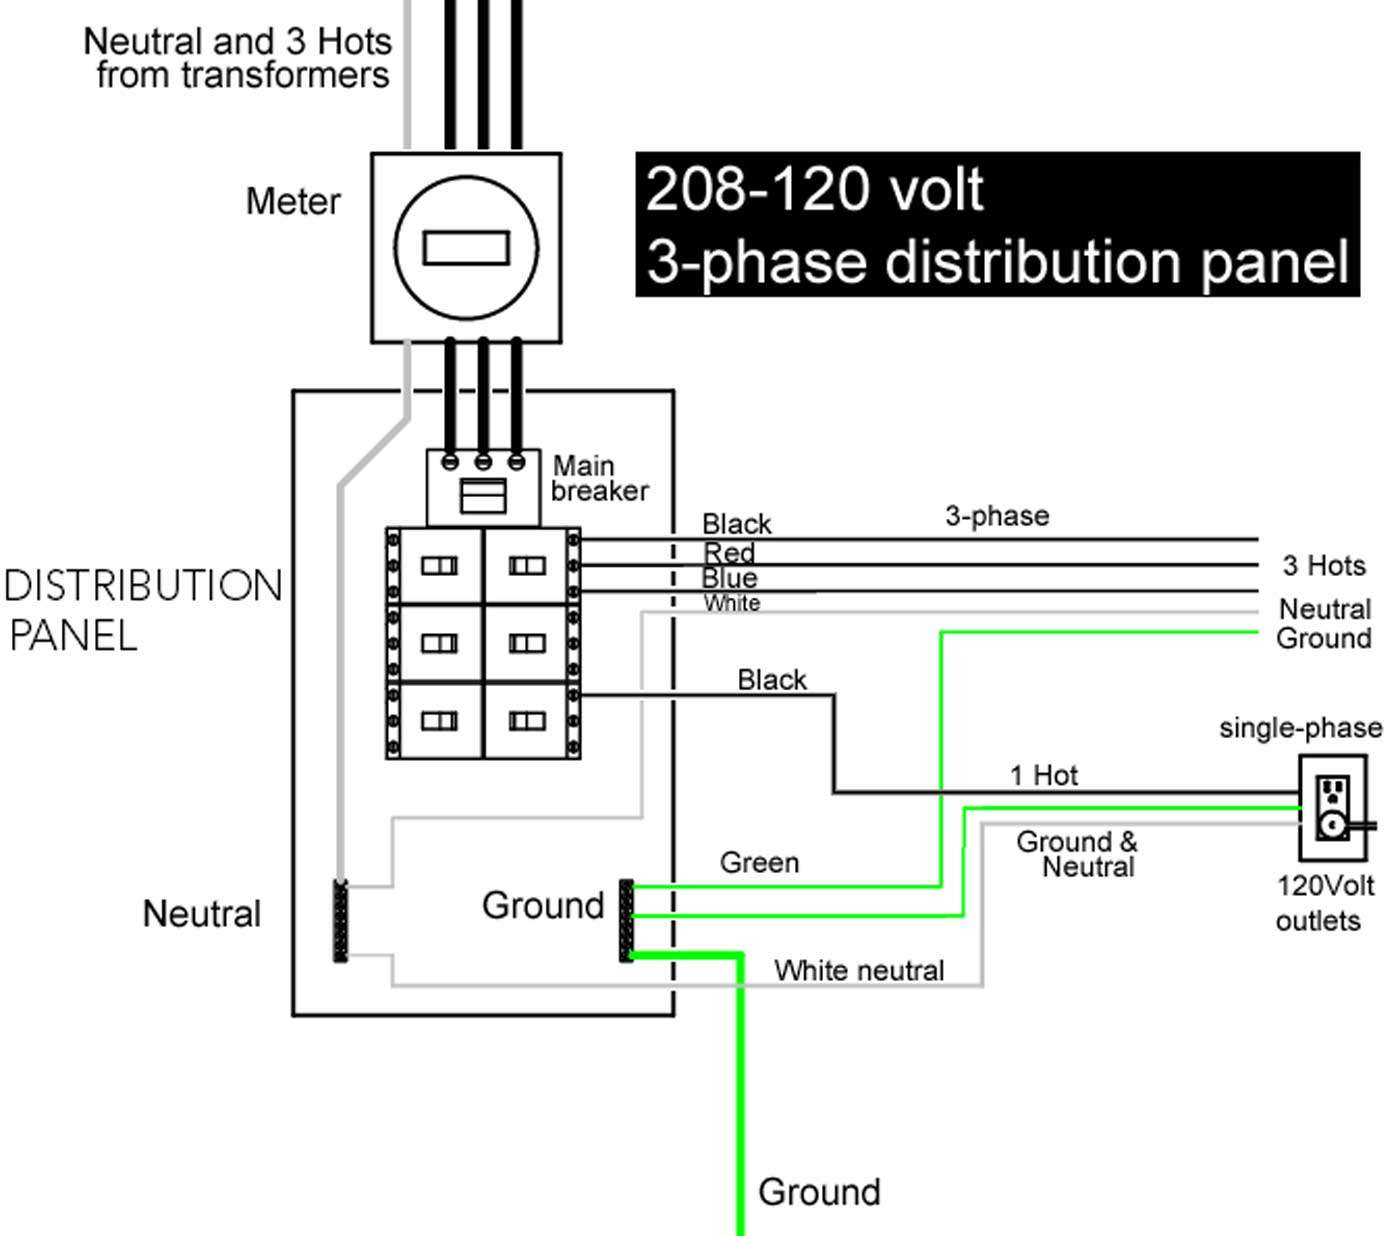 hight resolution of larger image example 3 phase distribution panel with 208 120 volt service ground wire shown